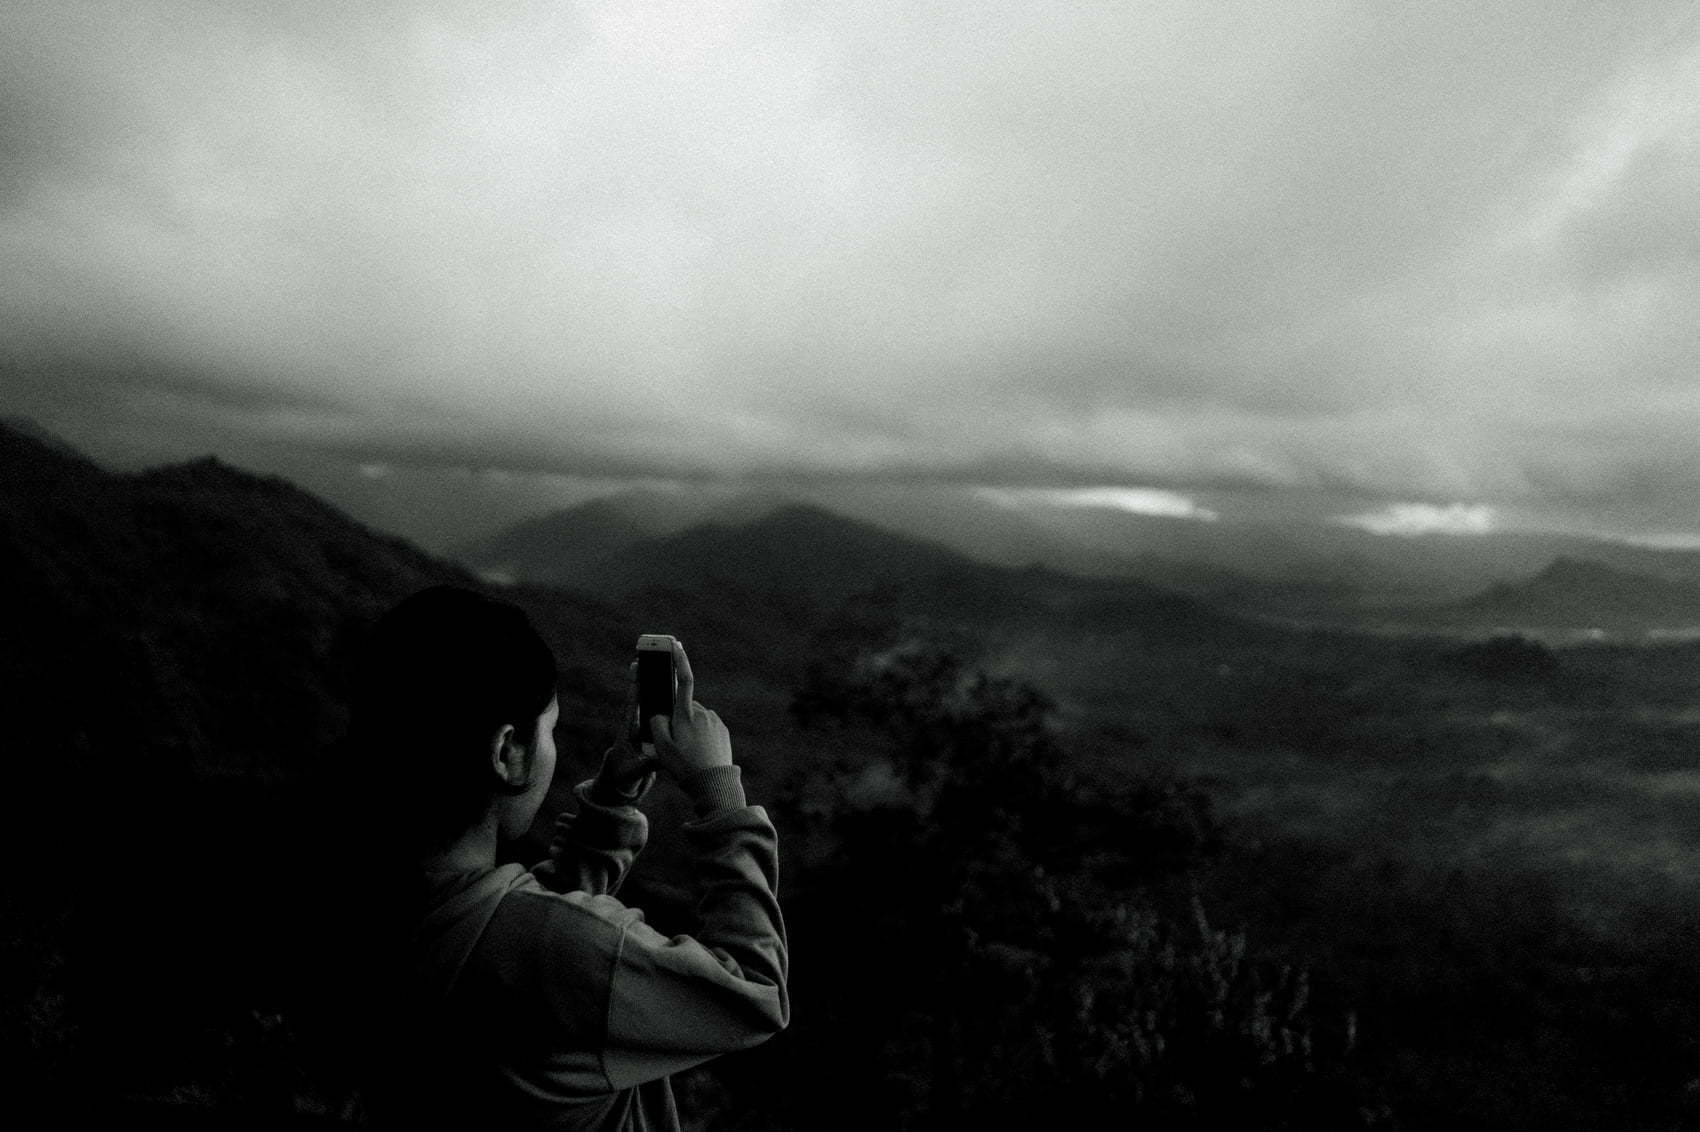 A girl shooting the morning landscape using her phone.